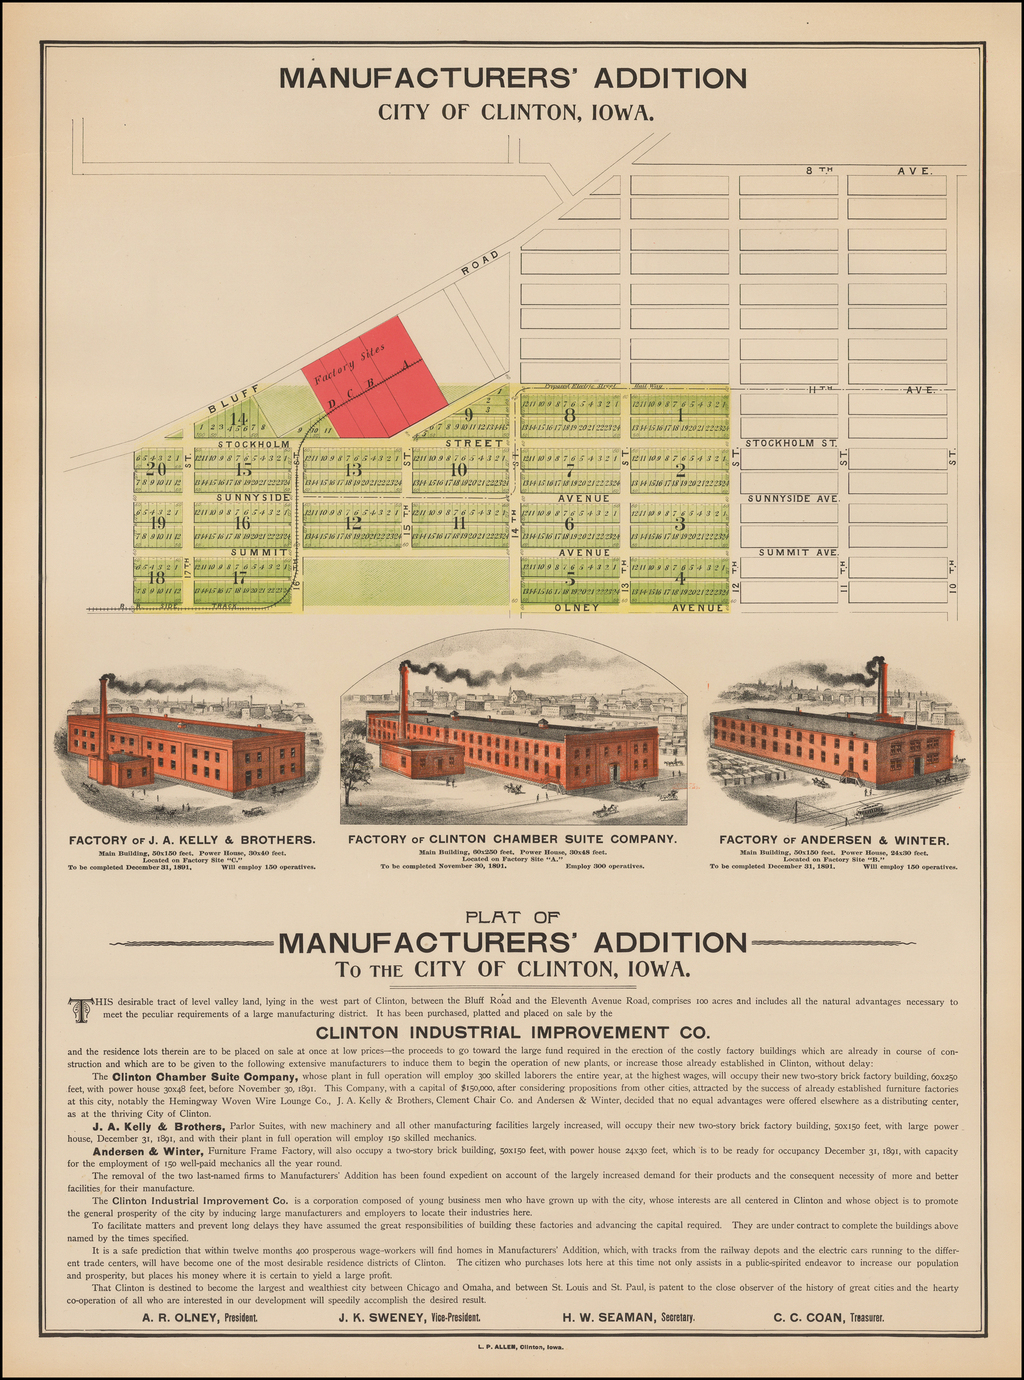 Manufacturers' Addition.  City of Clinton, Iowa. By L. P. Allen